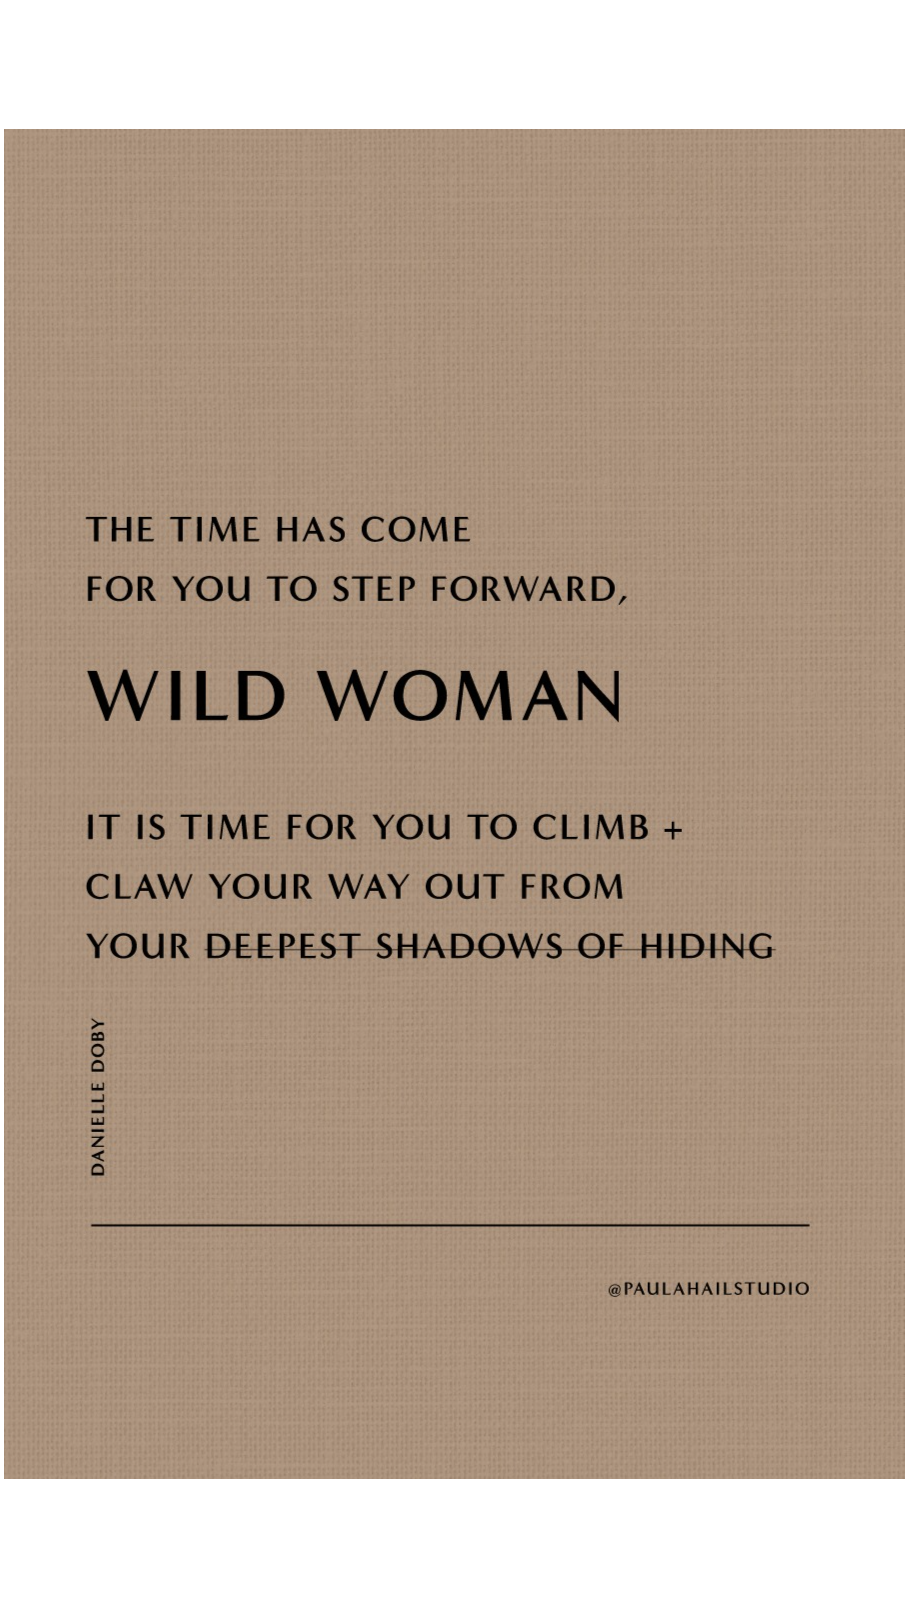 Step forward, WILD WOMAN - it's time!